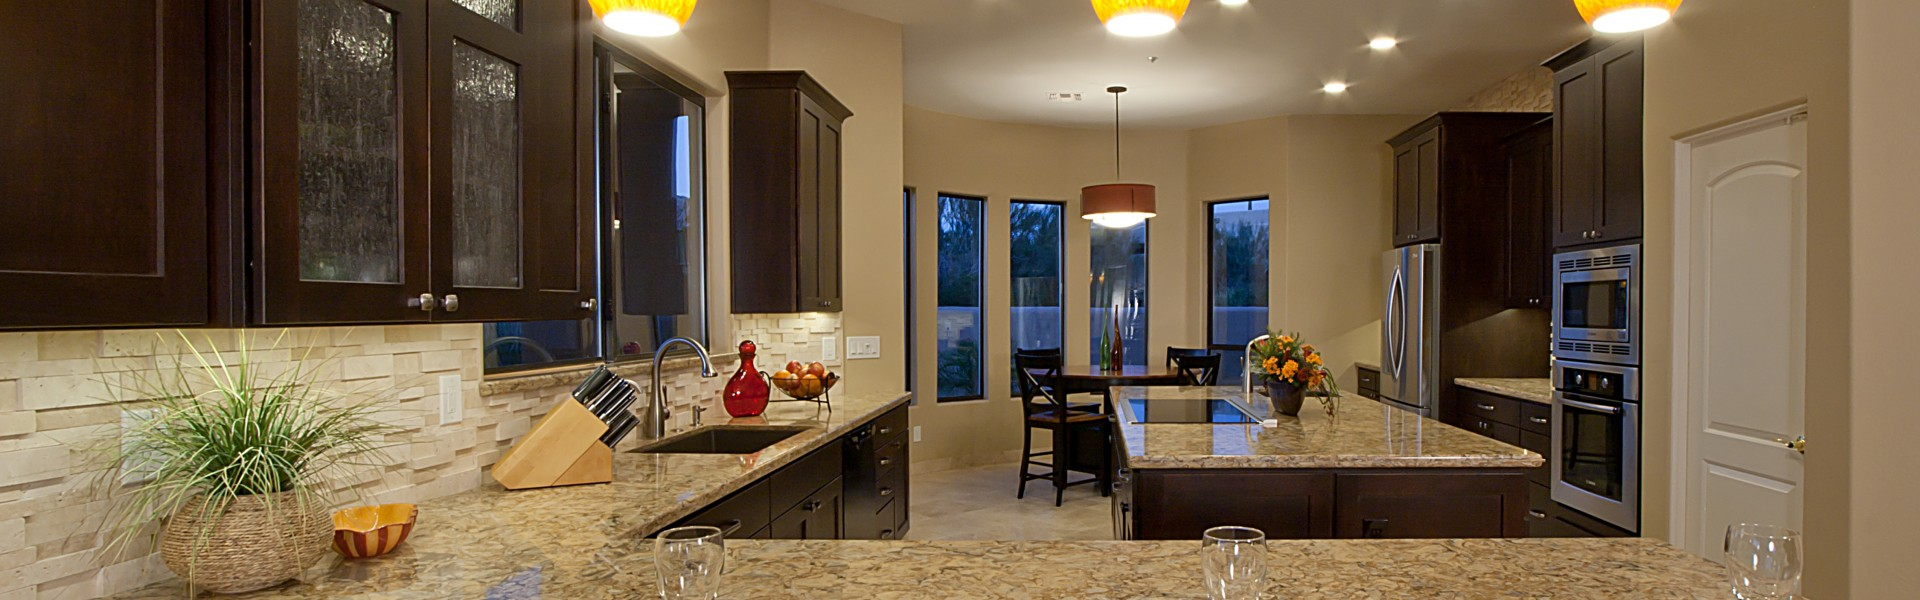 Sales Design Phoenix Home Remodeling Specialist RW Remodeling